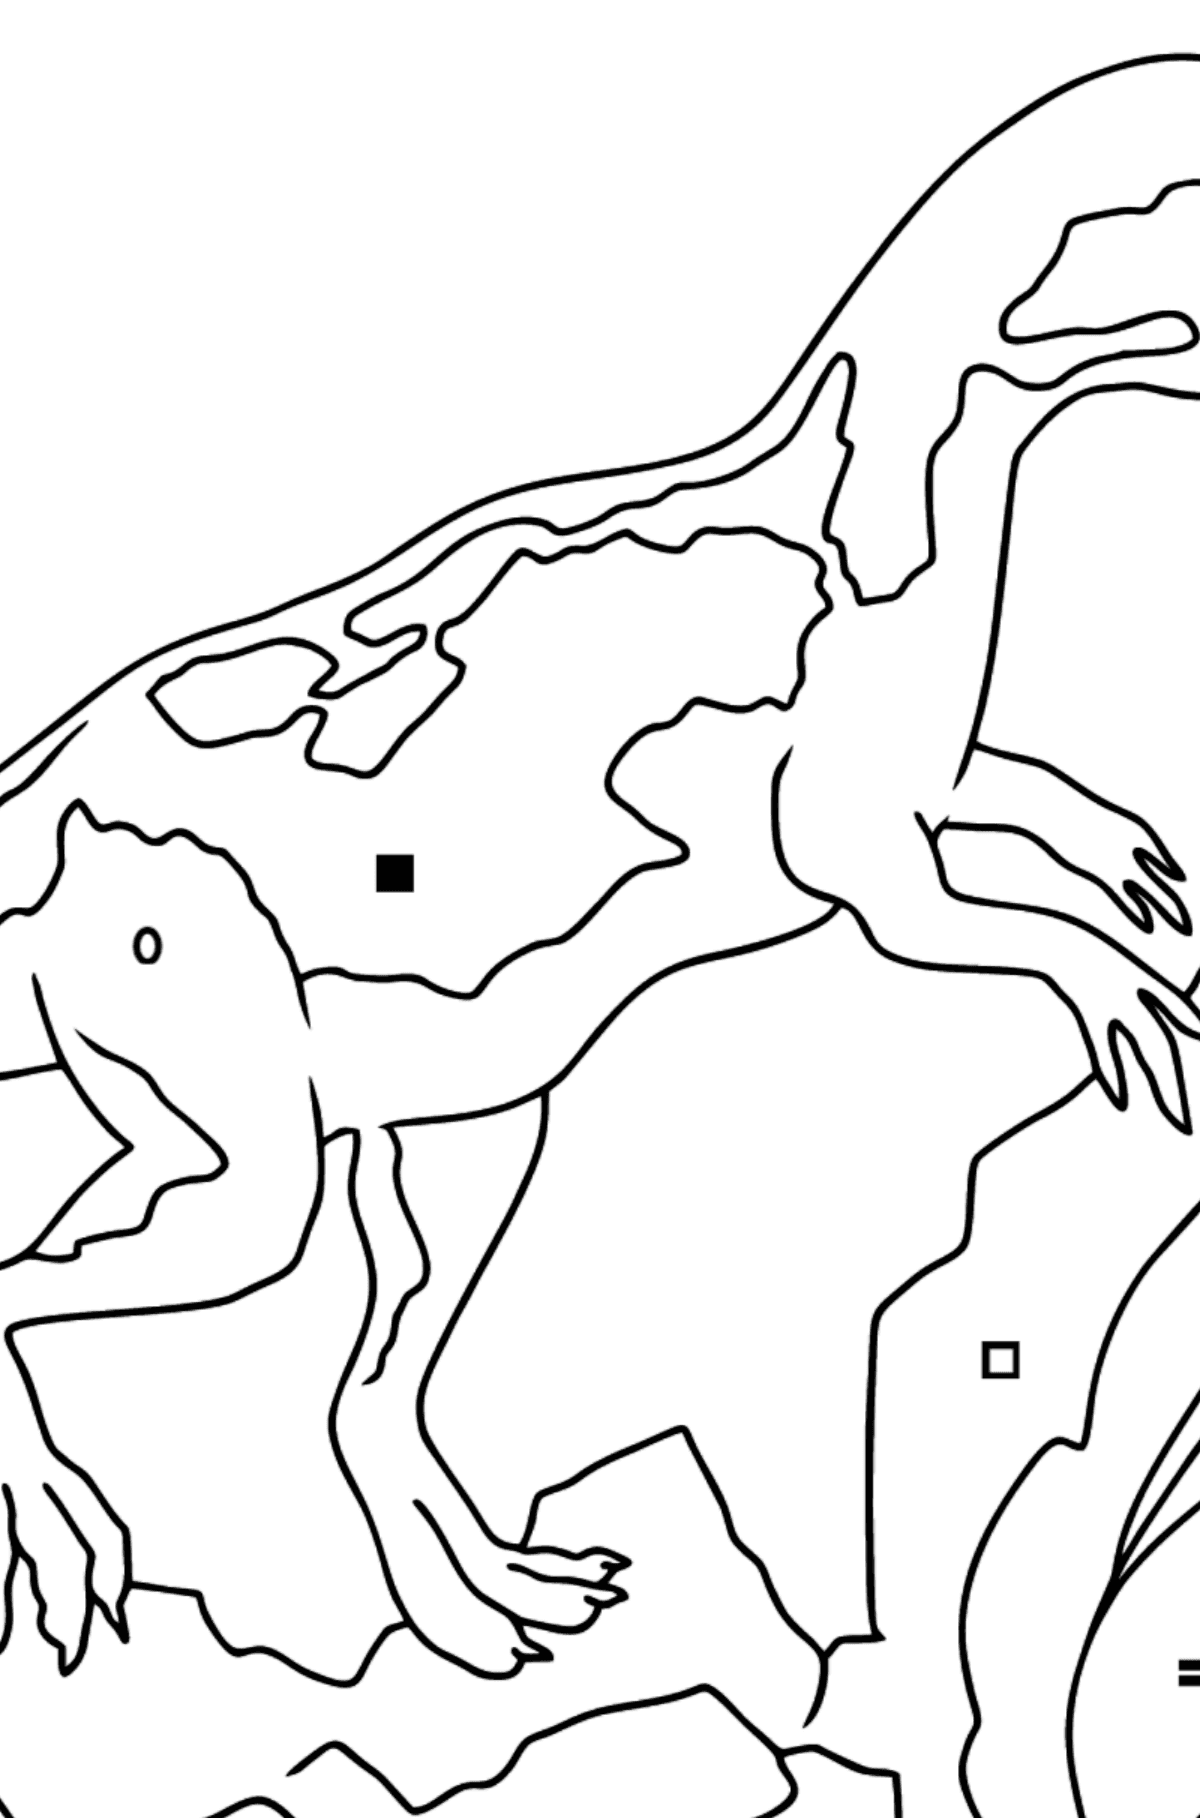 Coloring Page - A Dinosaur is Looking for Food - Coloring by Symbols and Geometric Shapes for Kids